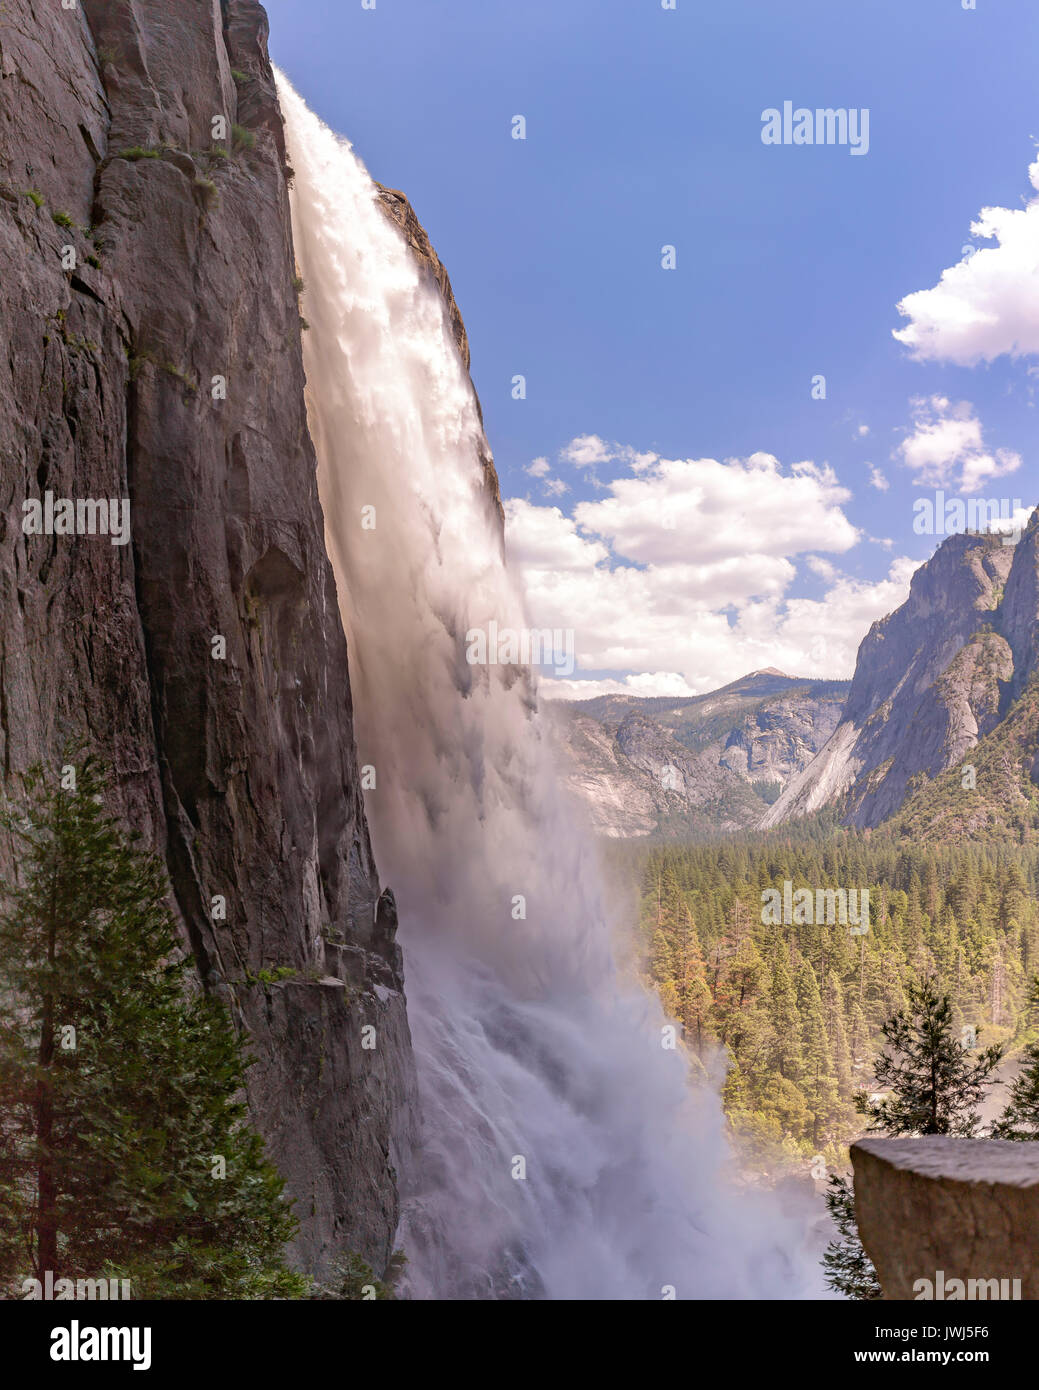 Yosemite Falls up close and shot from a unique angle in a wet area. Lower Falls in Yosemite with a view of the valley in the background - Stock Image